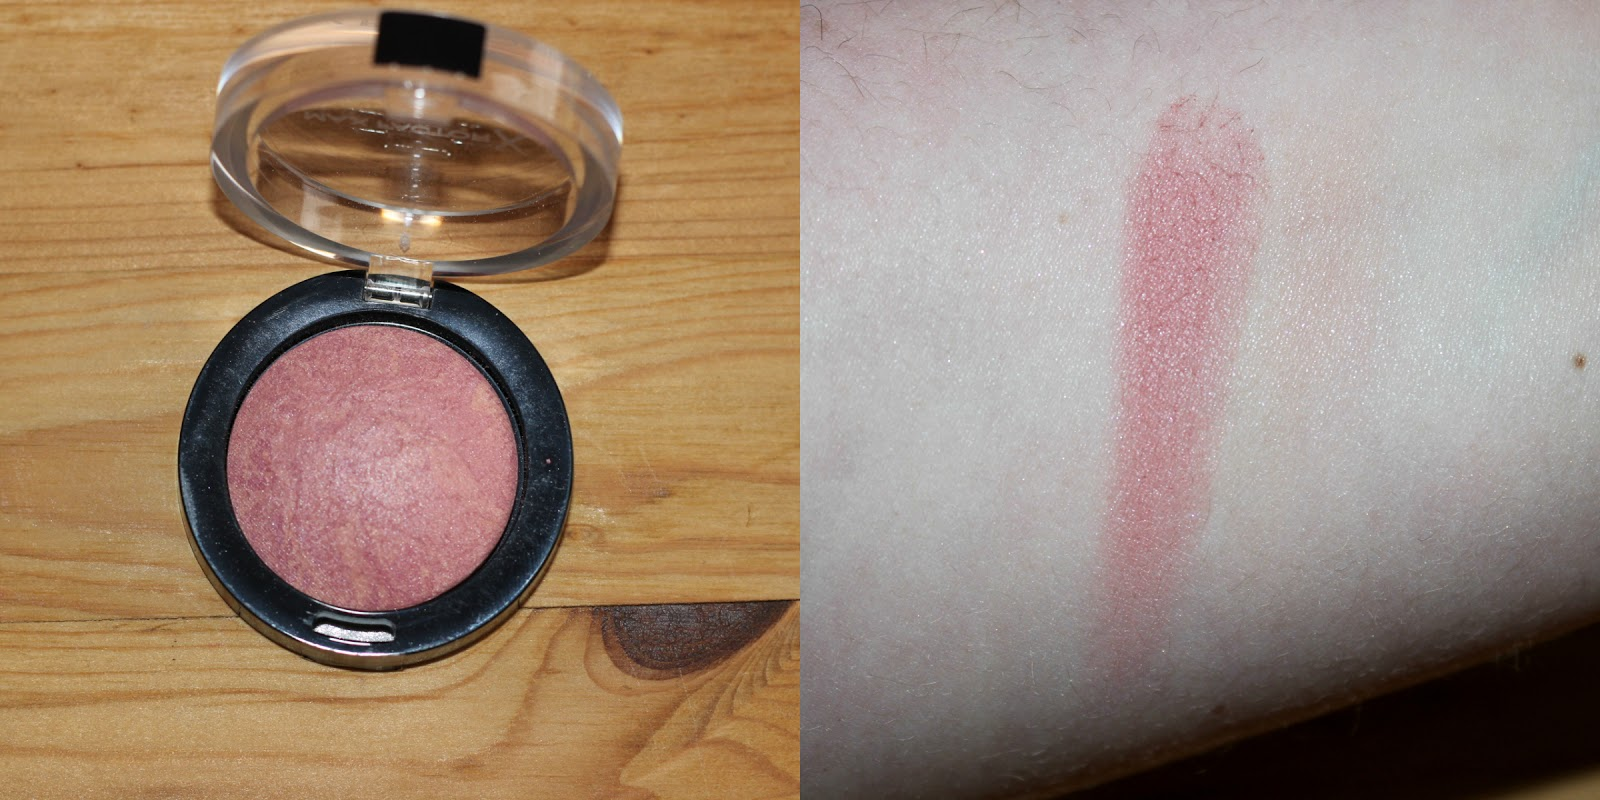 Maxfactor Creme Puff Blush In Seductive Pink Swatch